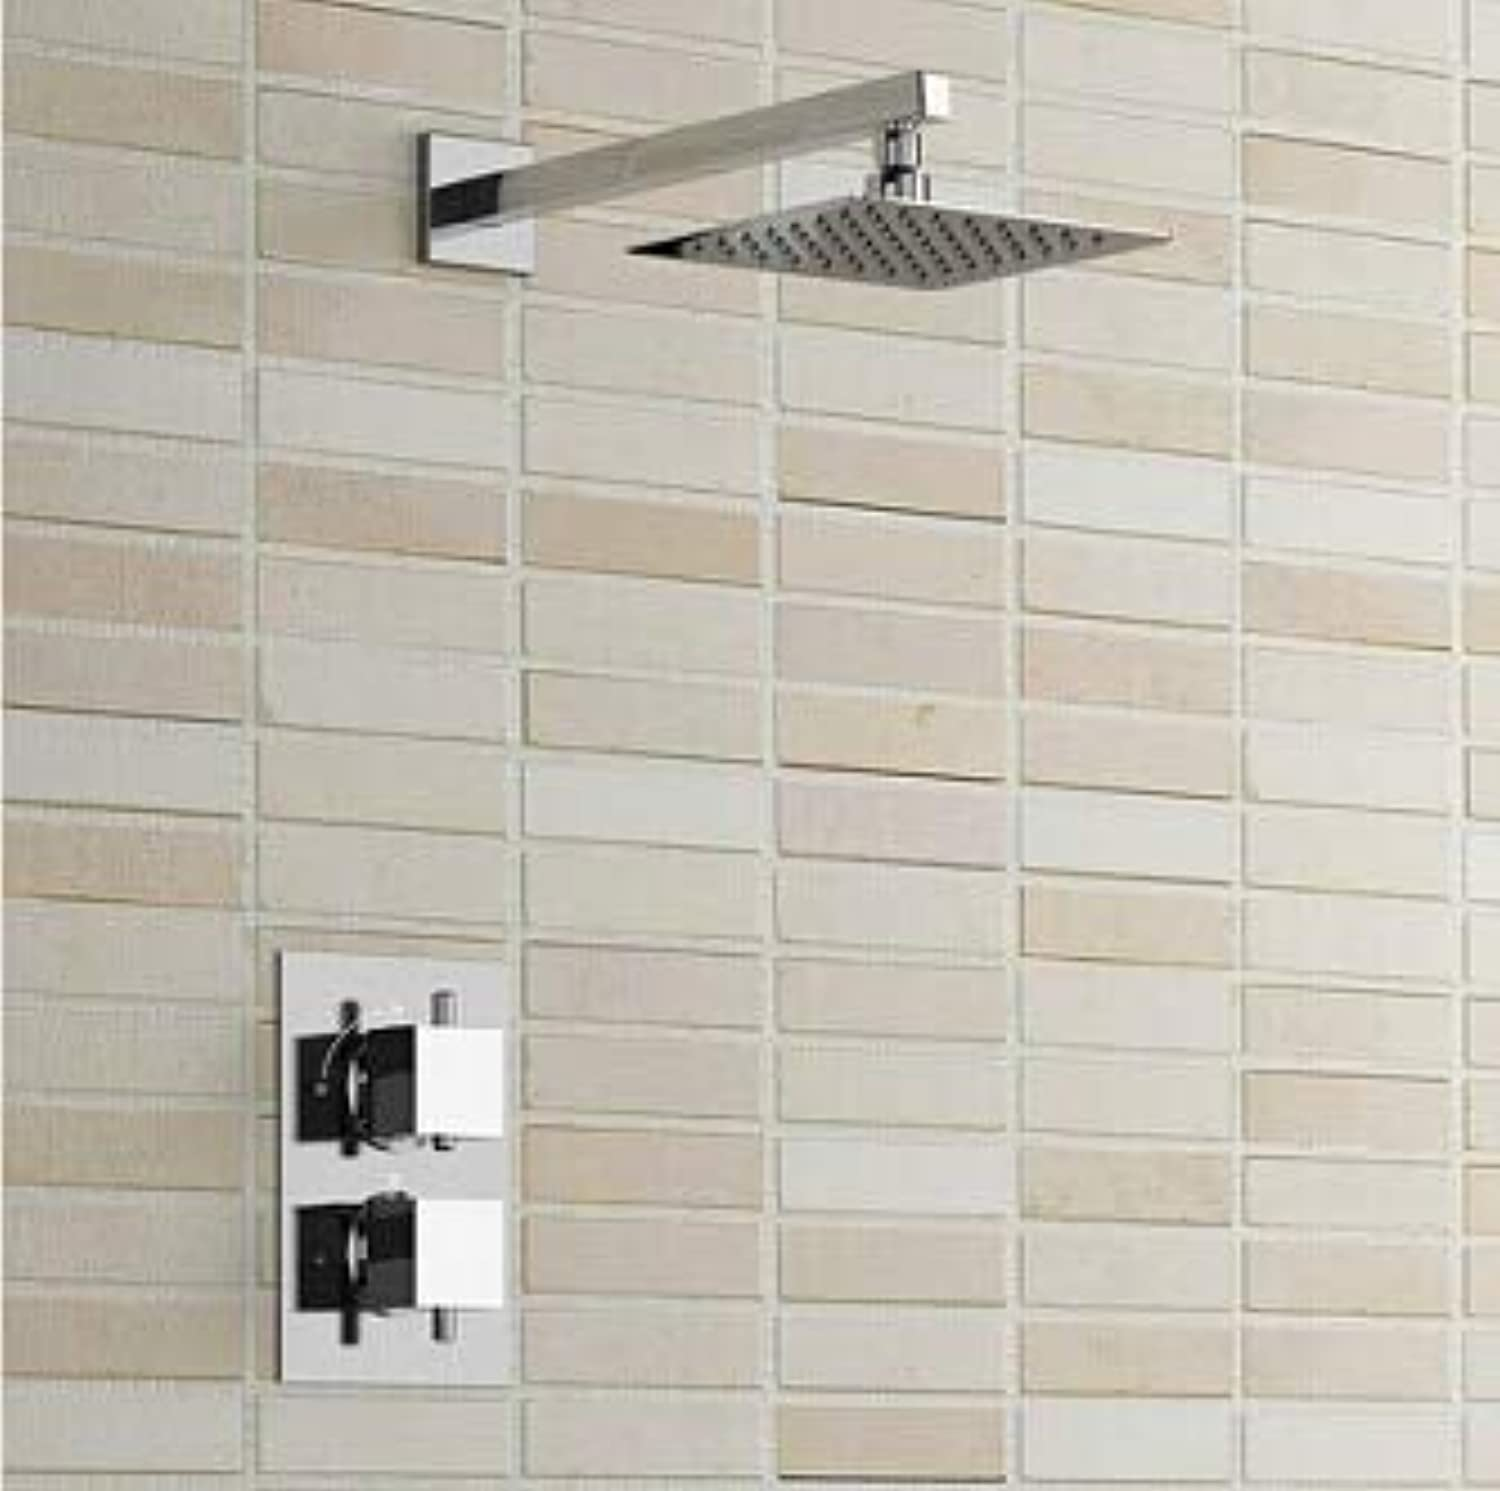 8  Ultra Thin Square Thermostatic Shower Set 1-Way Bathroom Concealed Install Shower Set Wall Mounted,Weiß